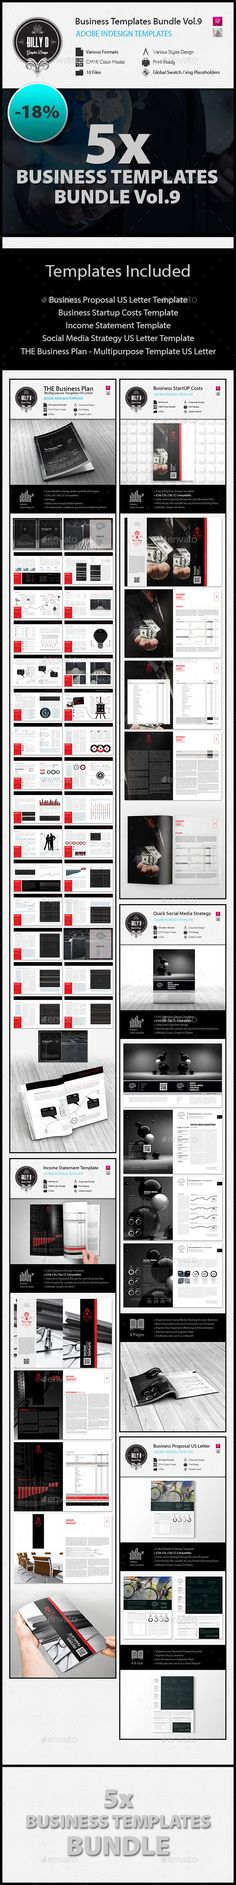 Web Design e-Proposal Template Design templates, Web design and - business startup costs spreadsheet